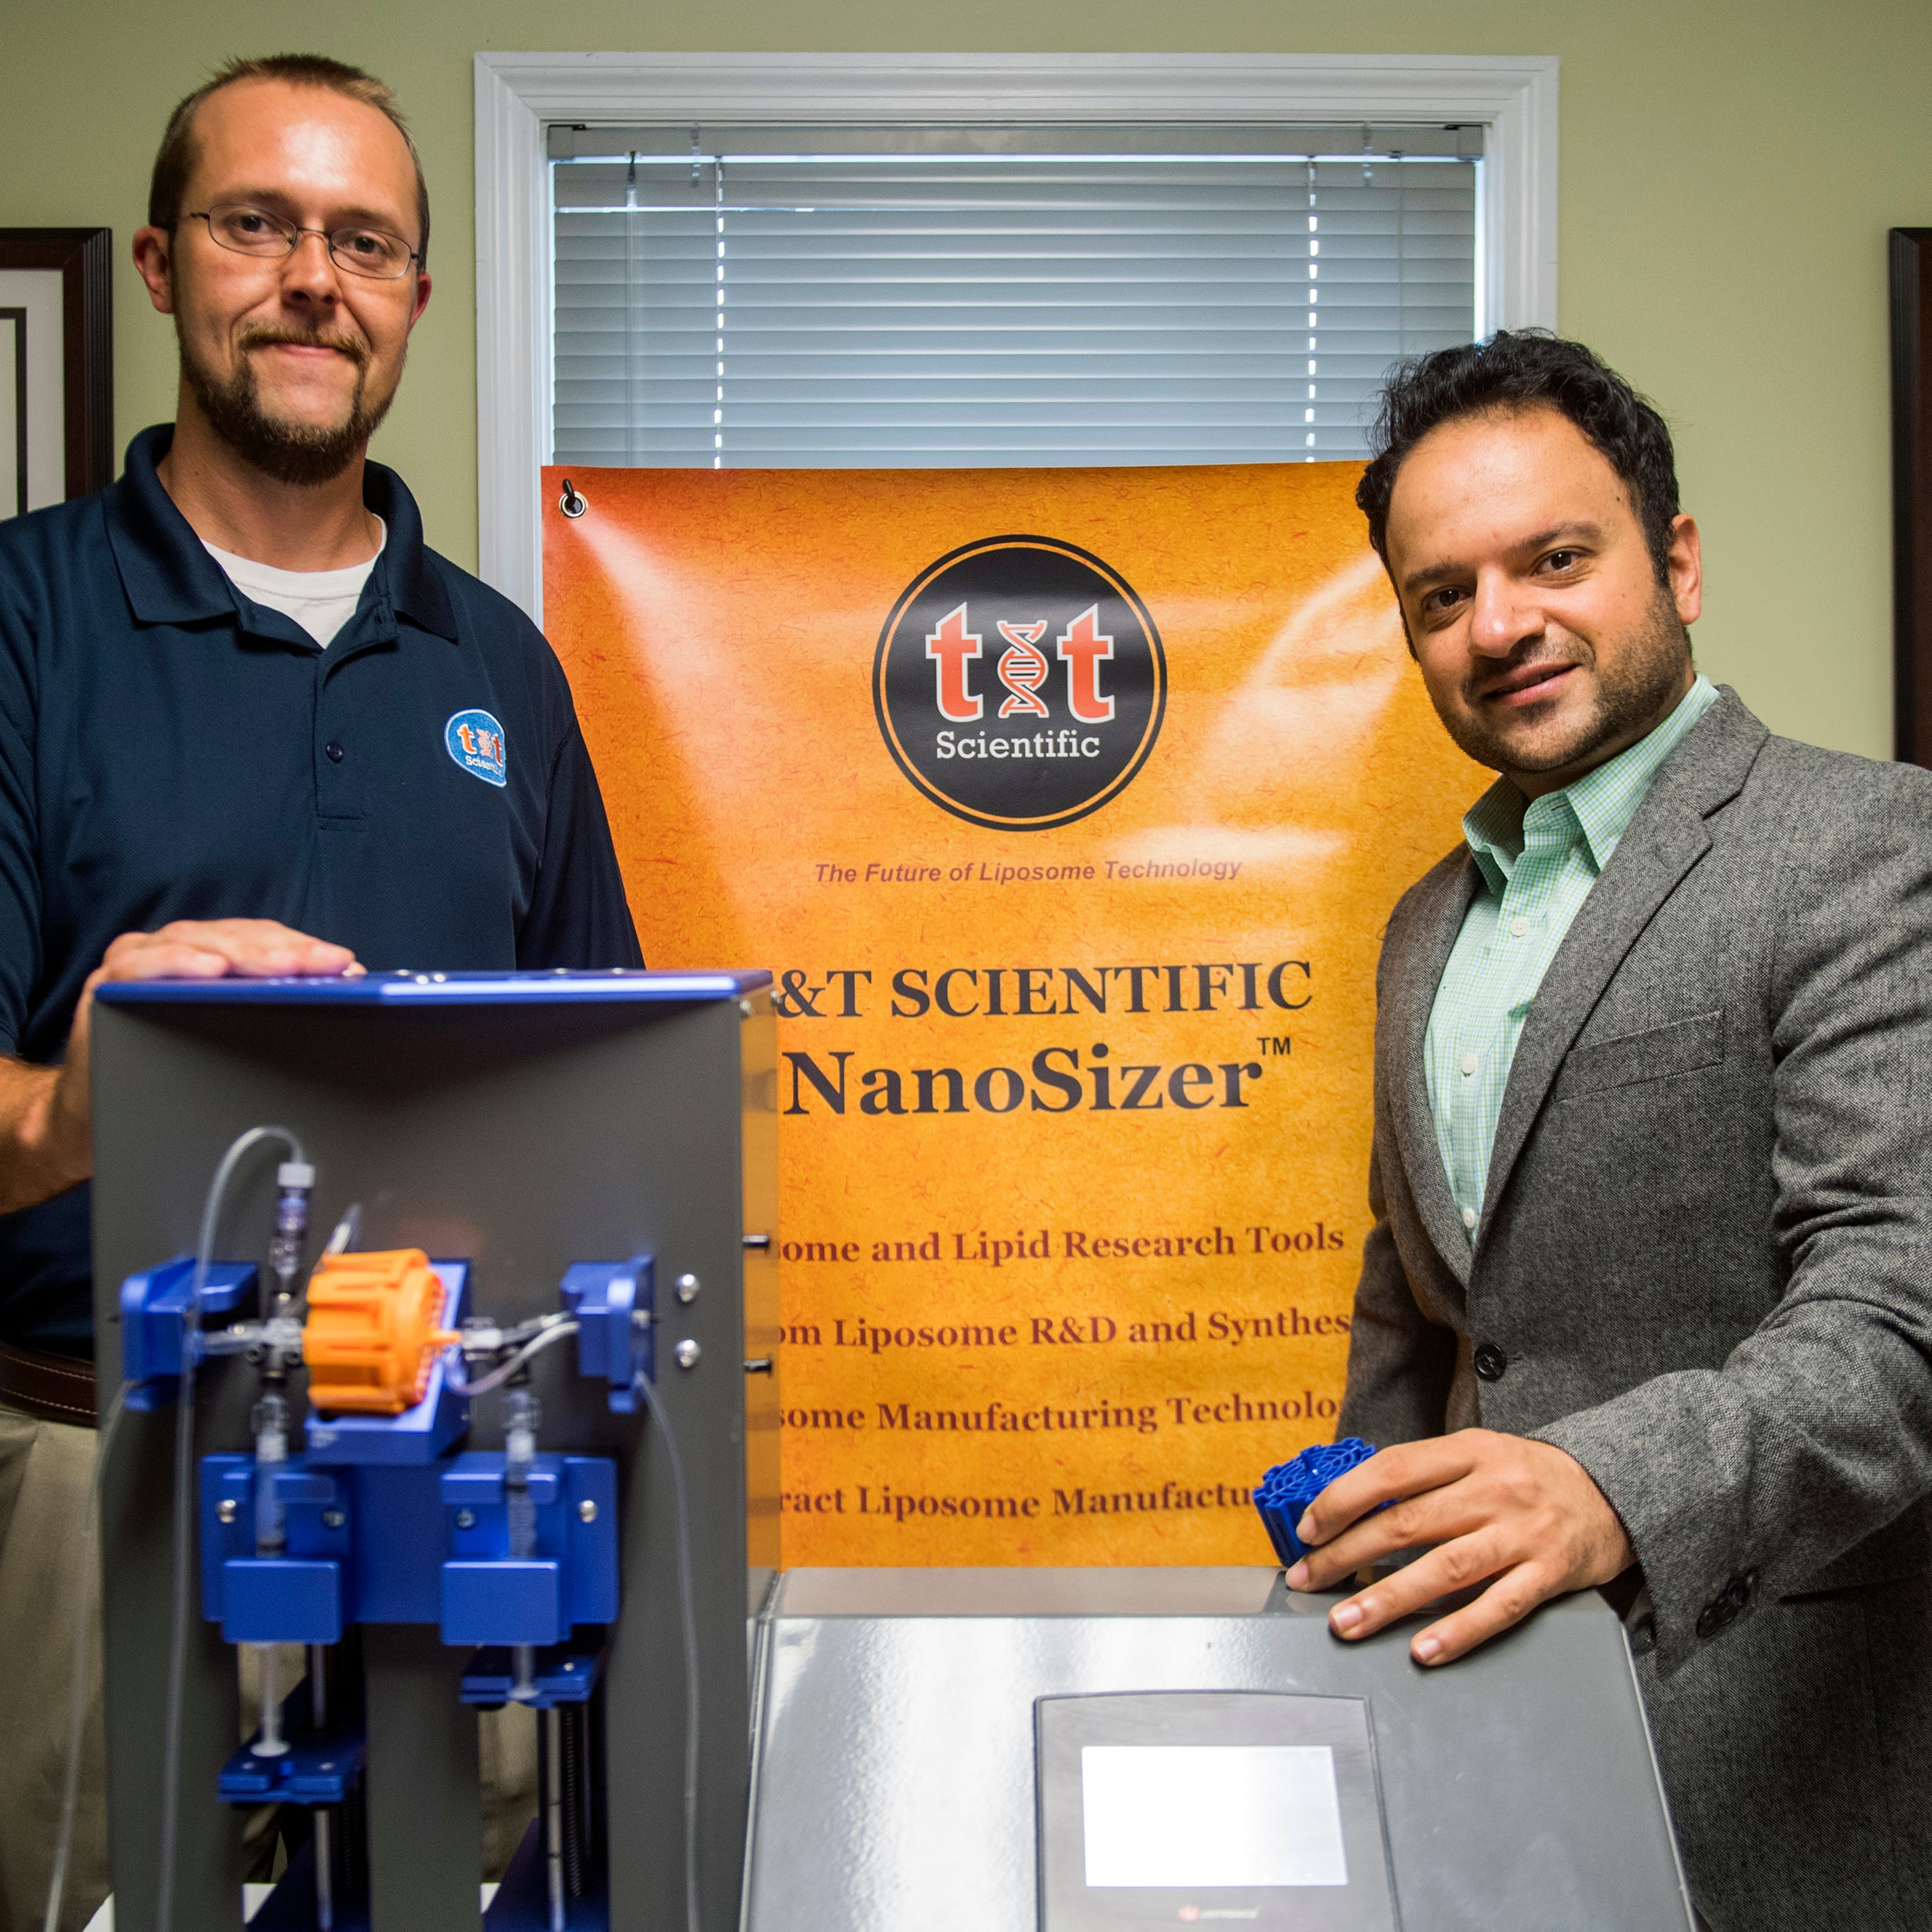 Traction Award winner T&T Scientific expanding to larger facility in Halls